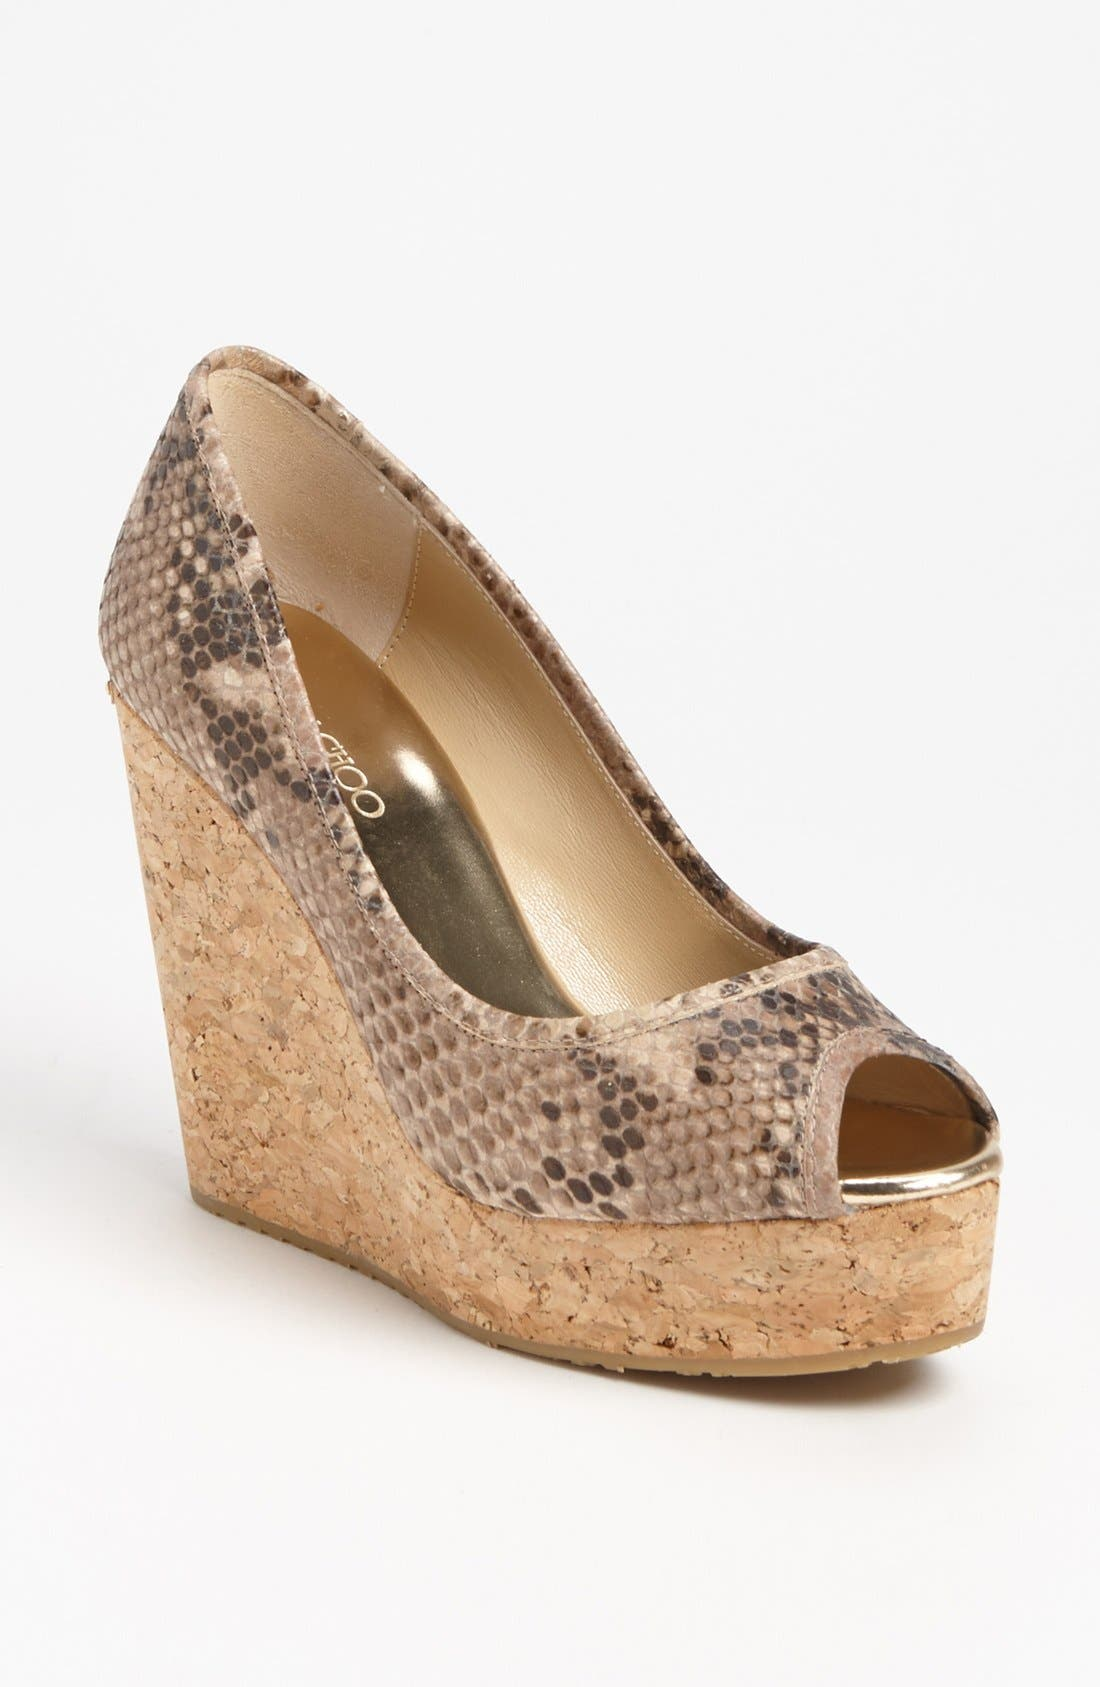 Main Image - Jimmy Choo 'Papina' Cork Wedge Pump